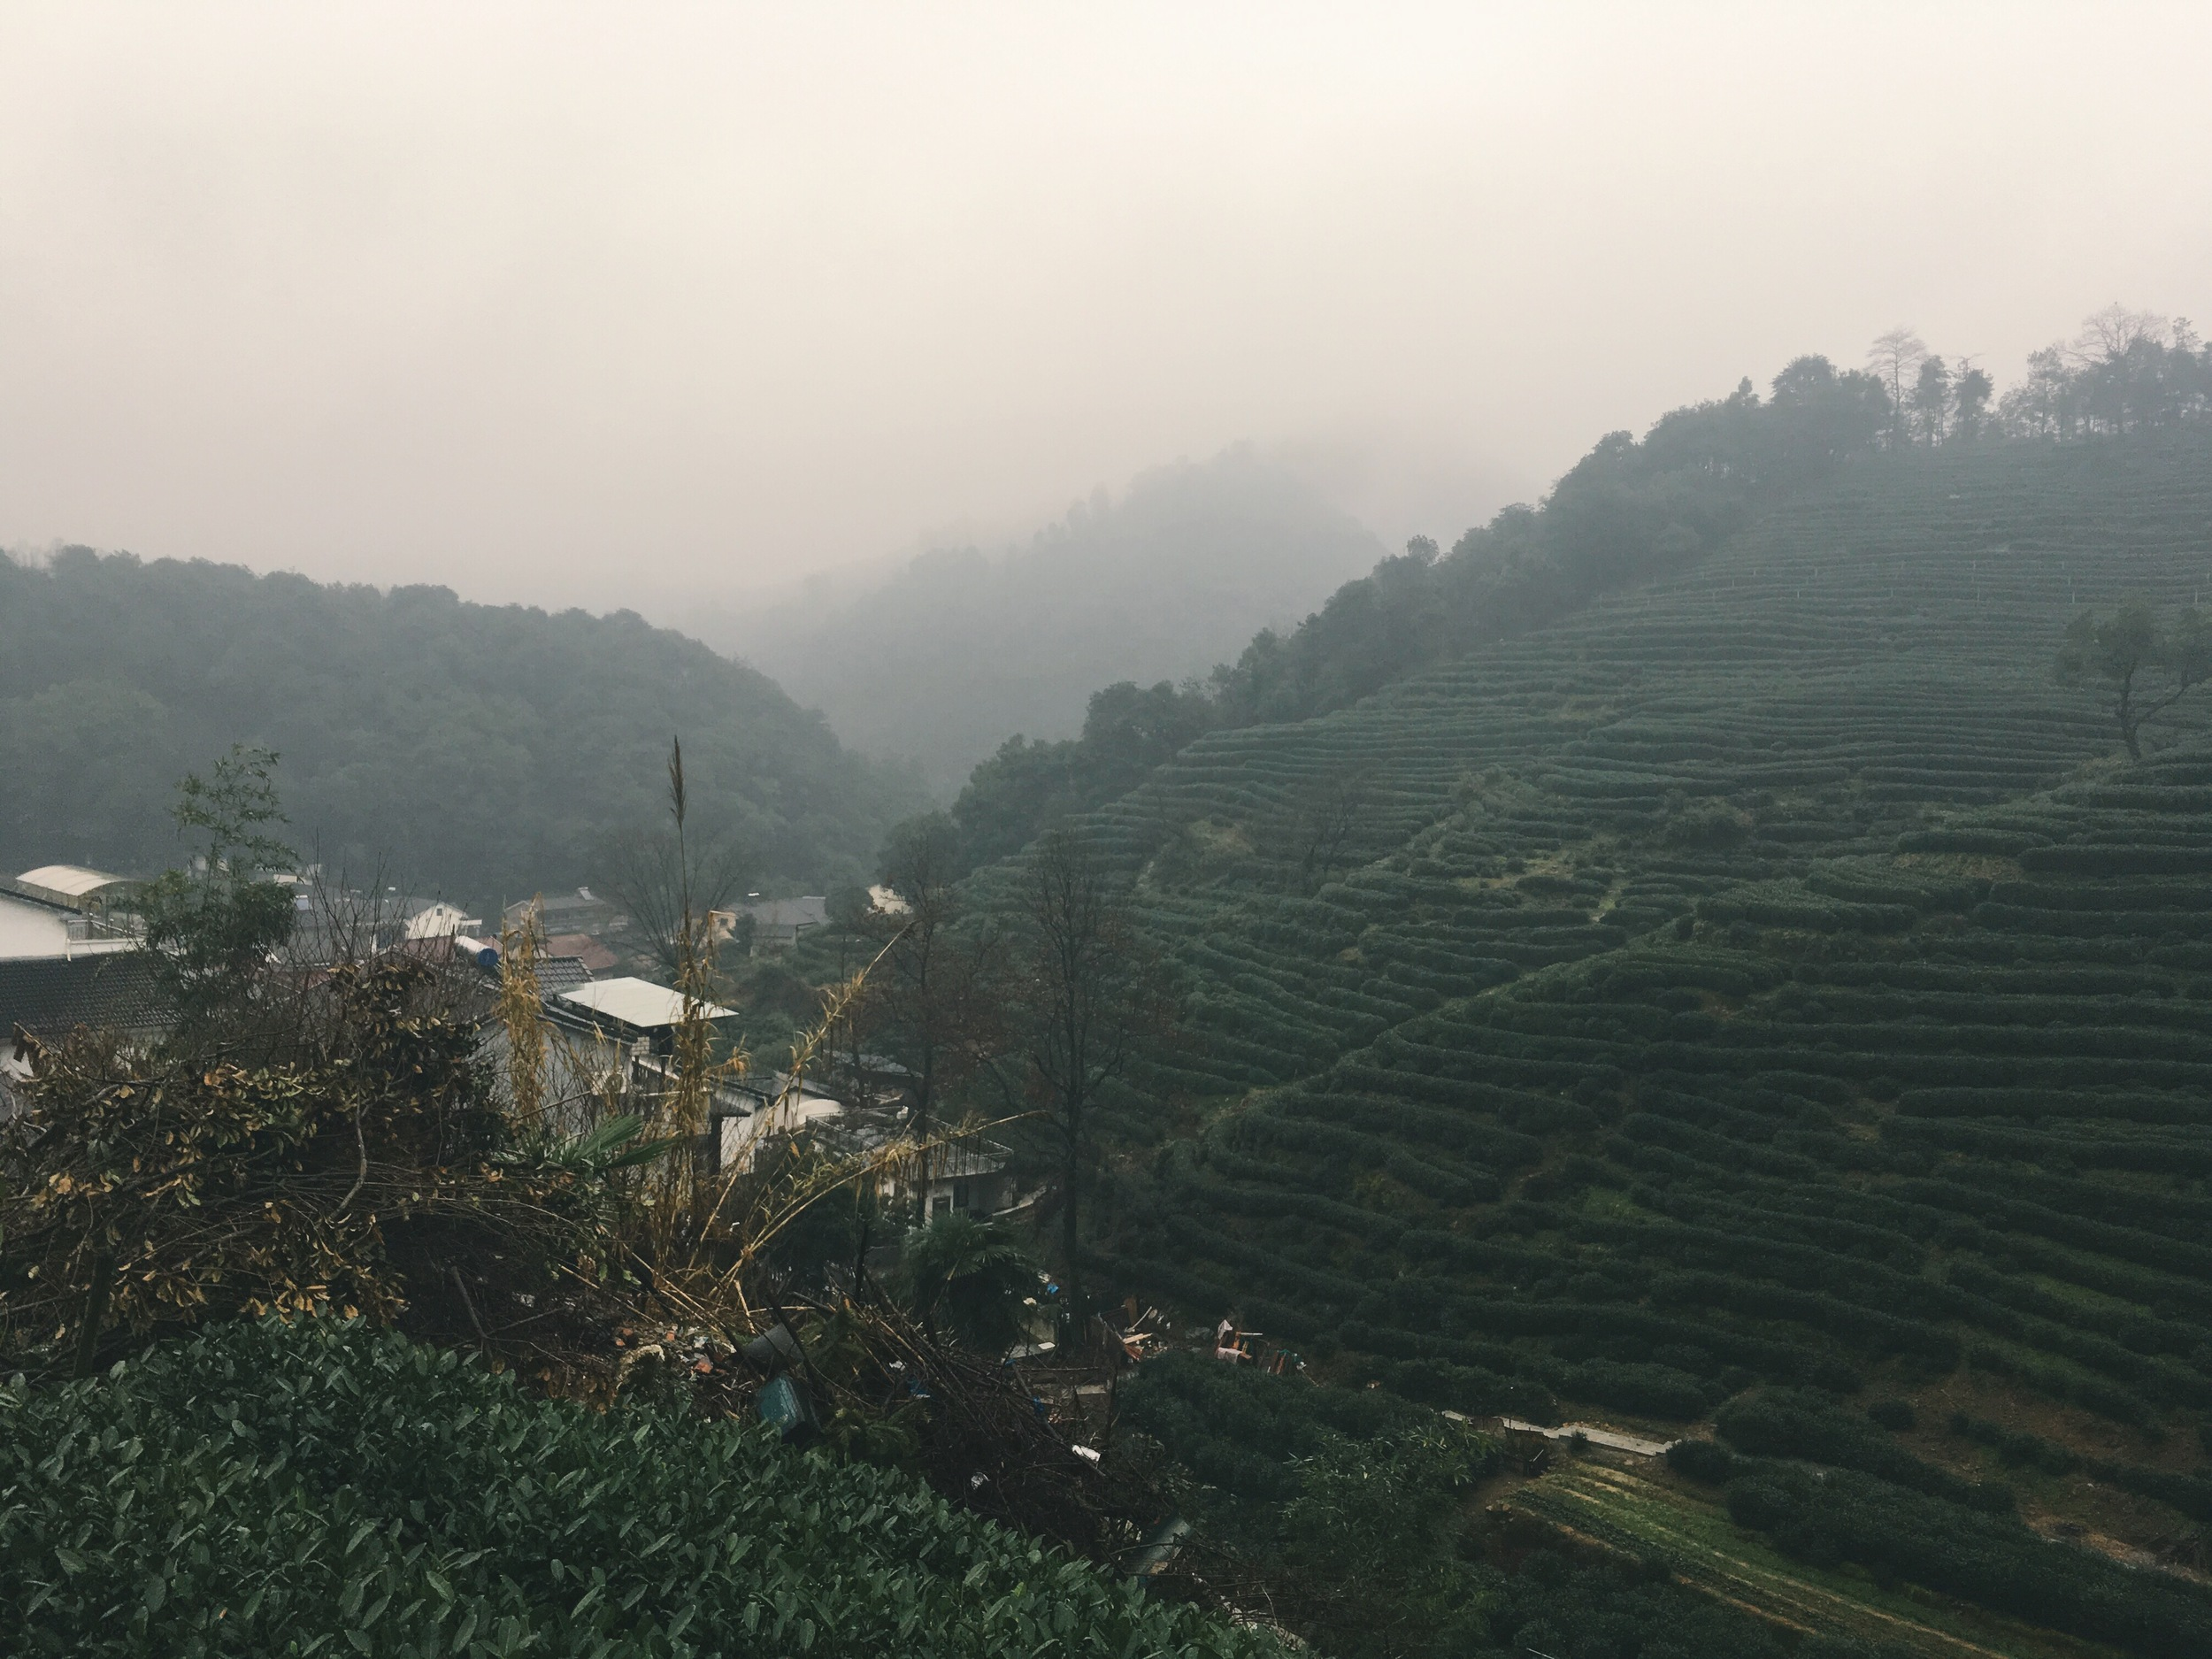 Chinese Dragonwell Green Tea Mountain Growing Area Village Mei Jia Wu